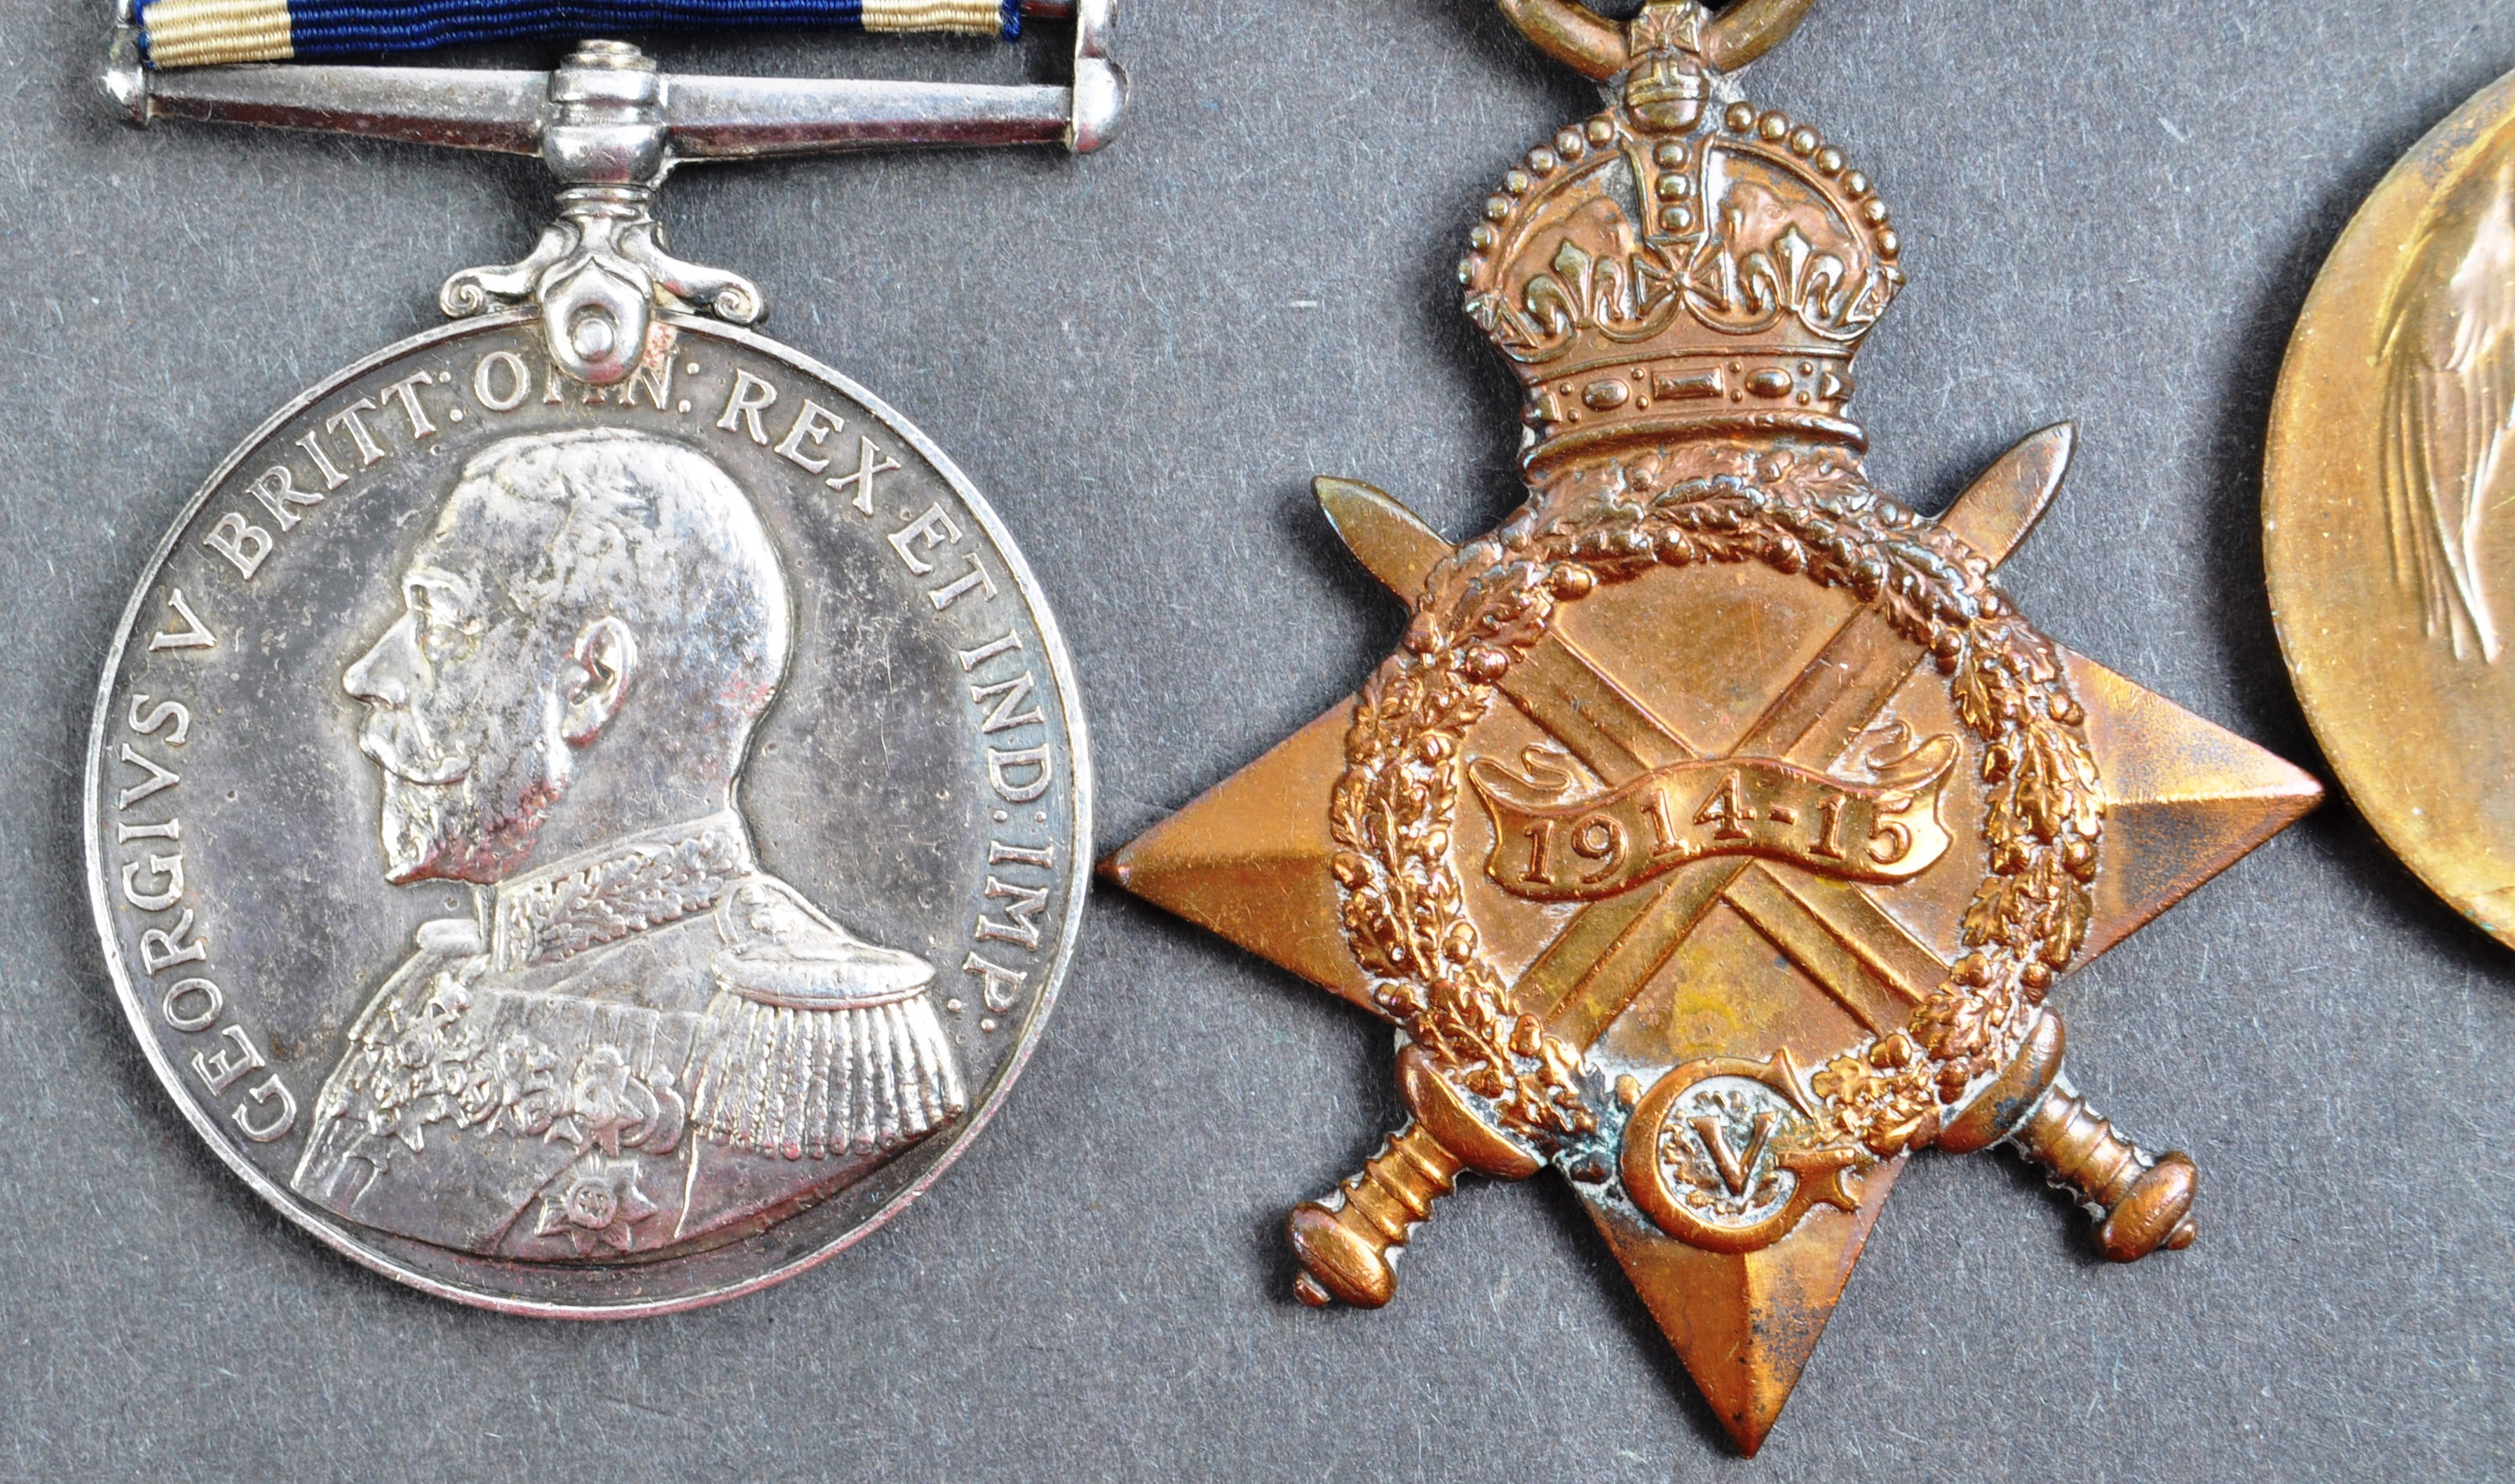 WWI FIRST WORLD WAR MEDAL GROUP - LEADING SEAMAN ROYAL NAVY - Image 2 of 10